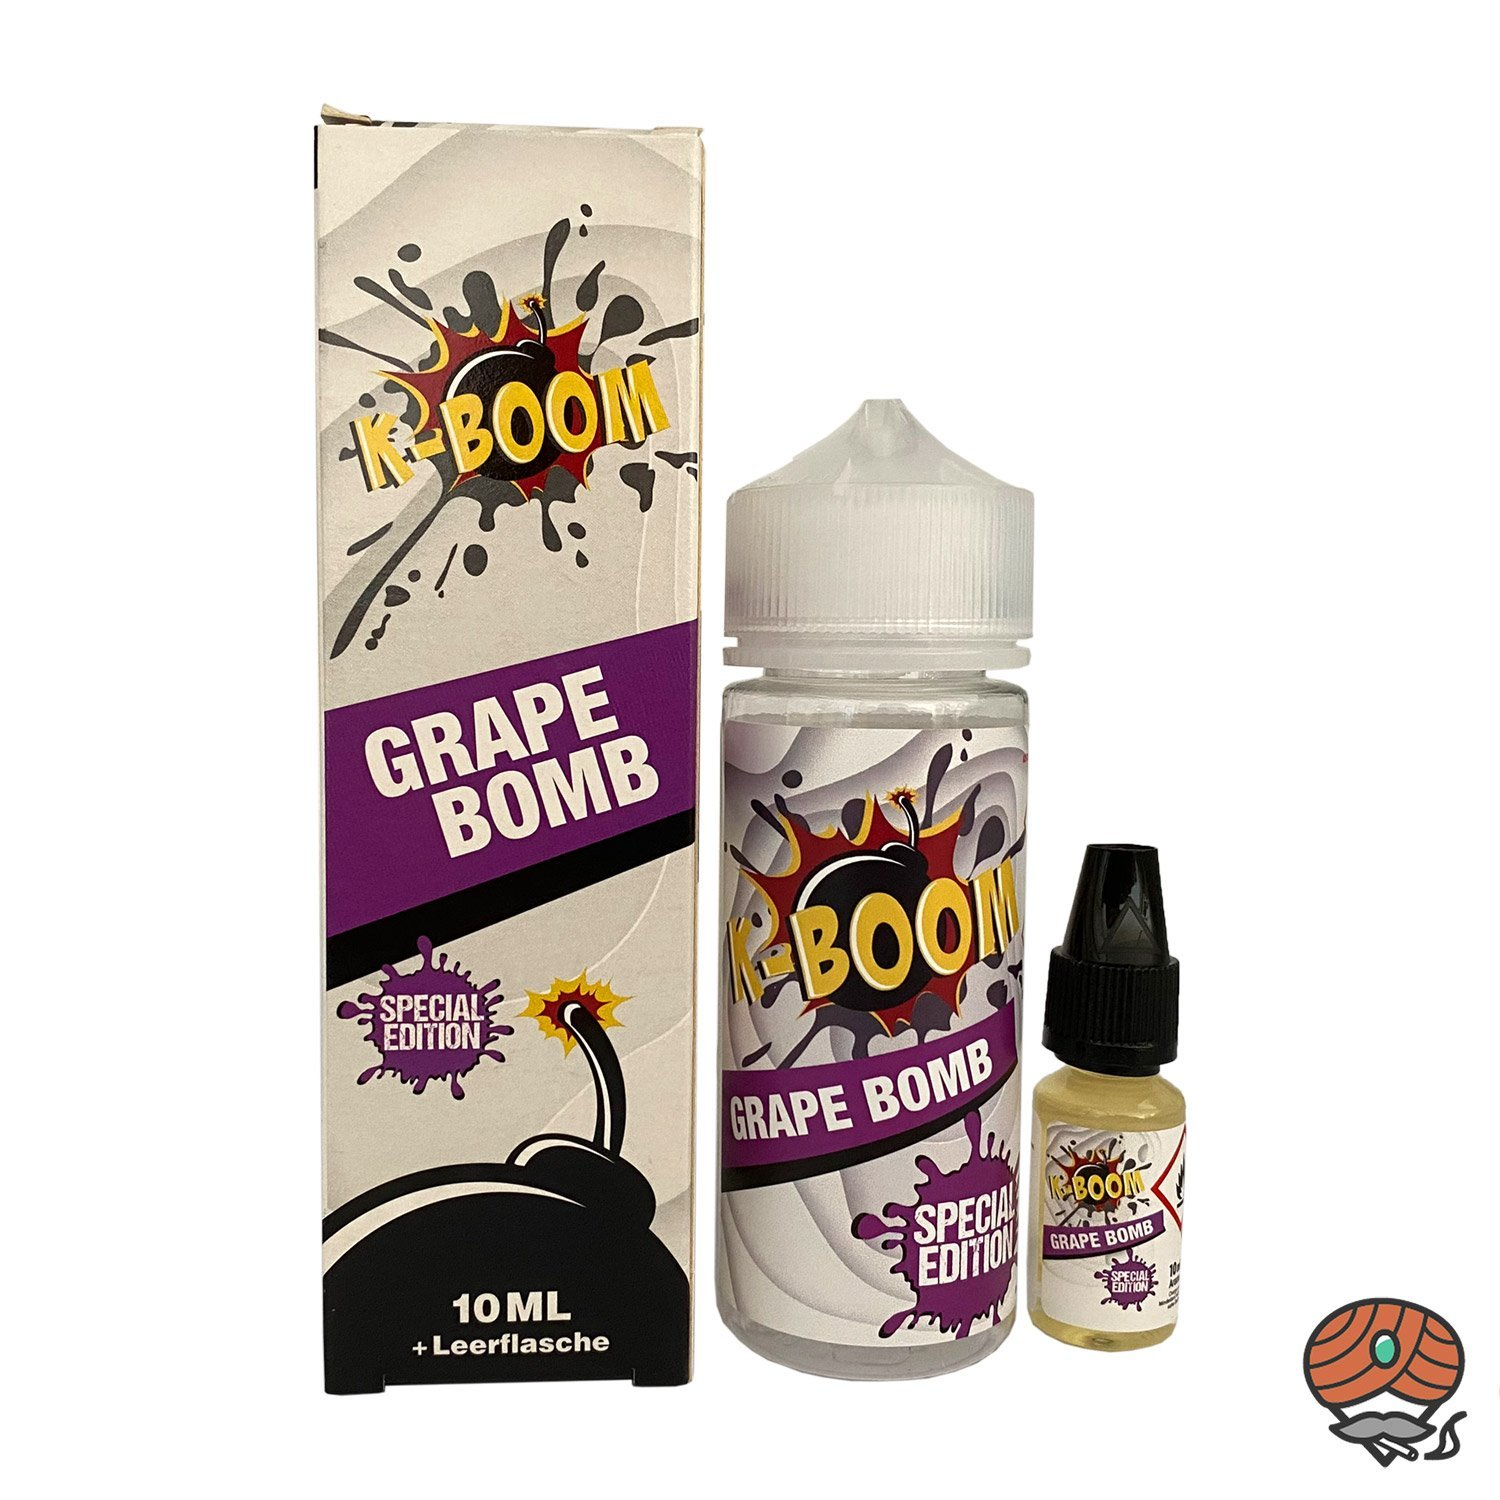 K-BOOM Grape Bomb 10 ml Aroma + Leerflasche, Longfill